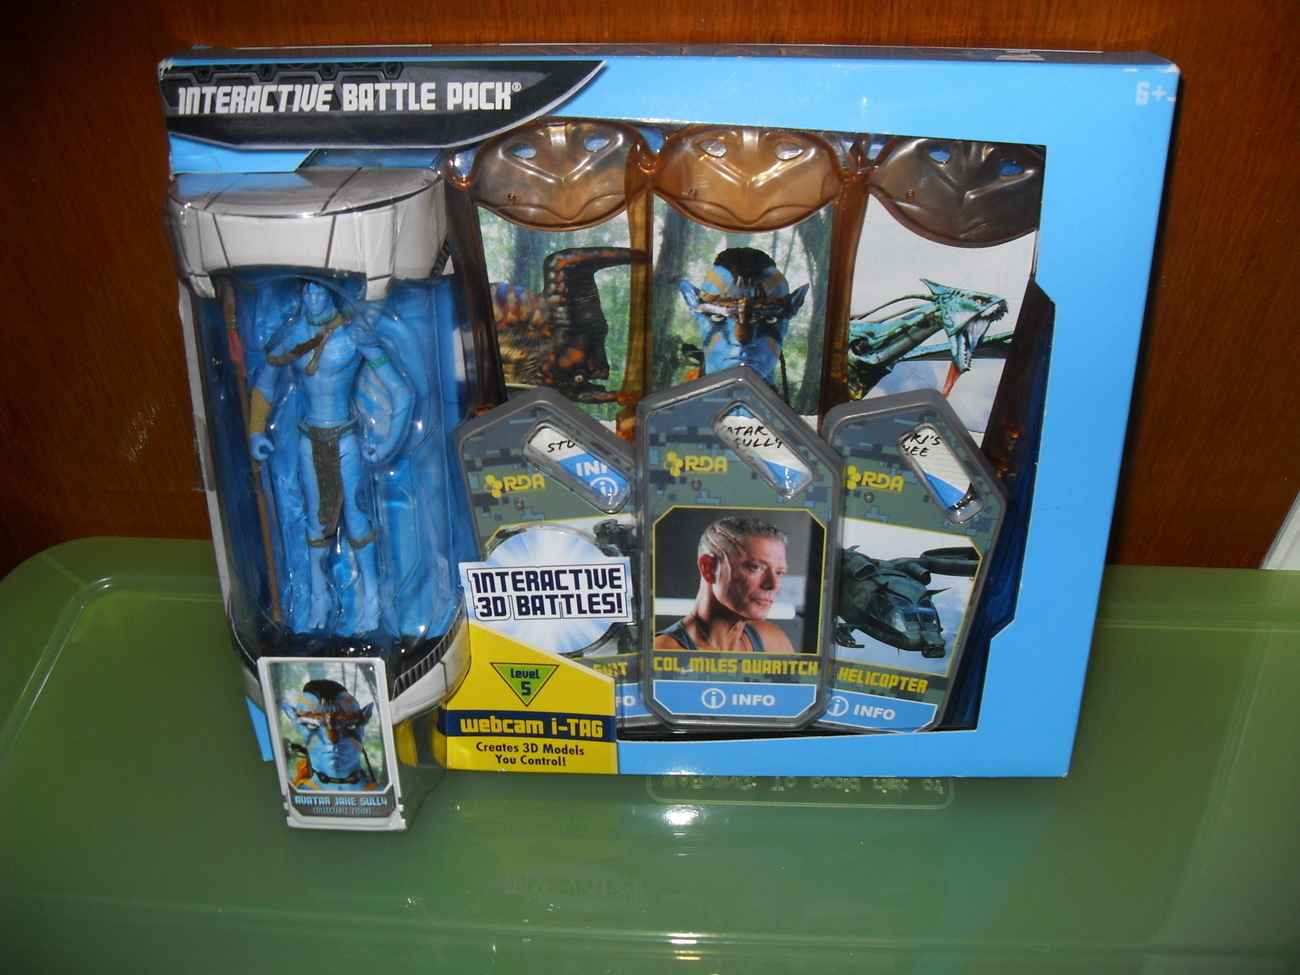 Primary image for Avatar Jake Sully Figure Interactive Battle Pack in the Pack